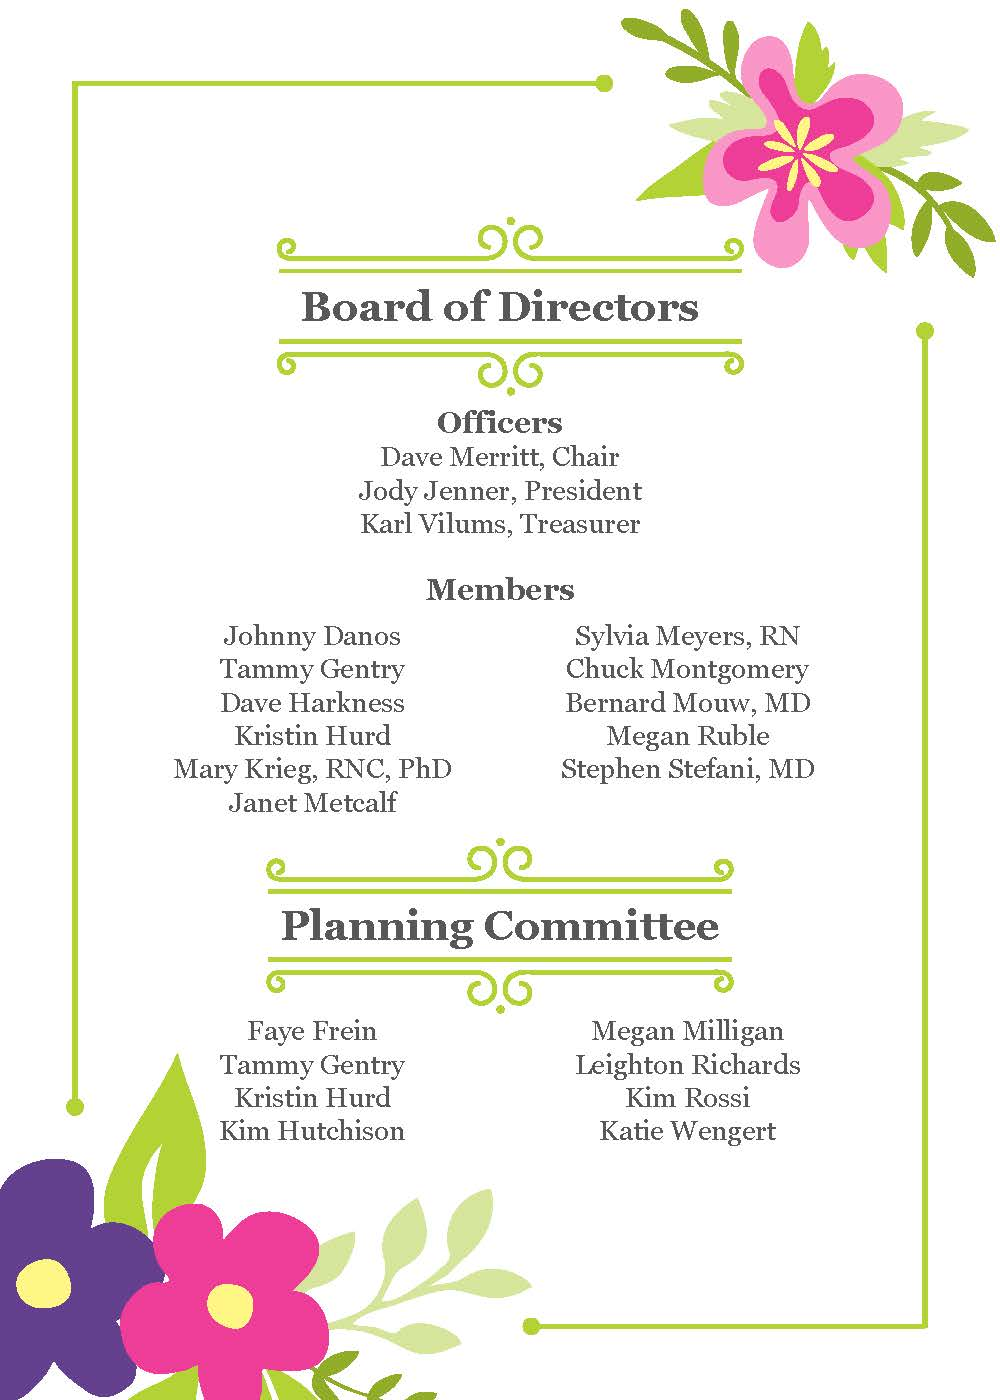 Gathering Board and Committee